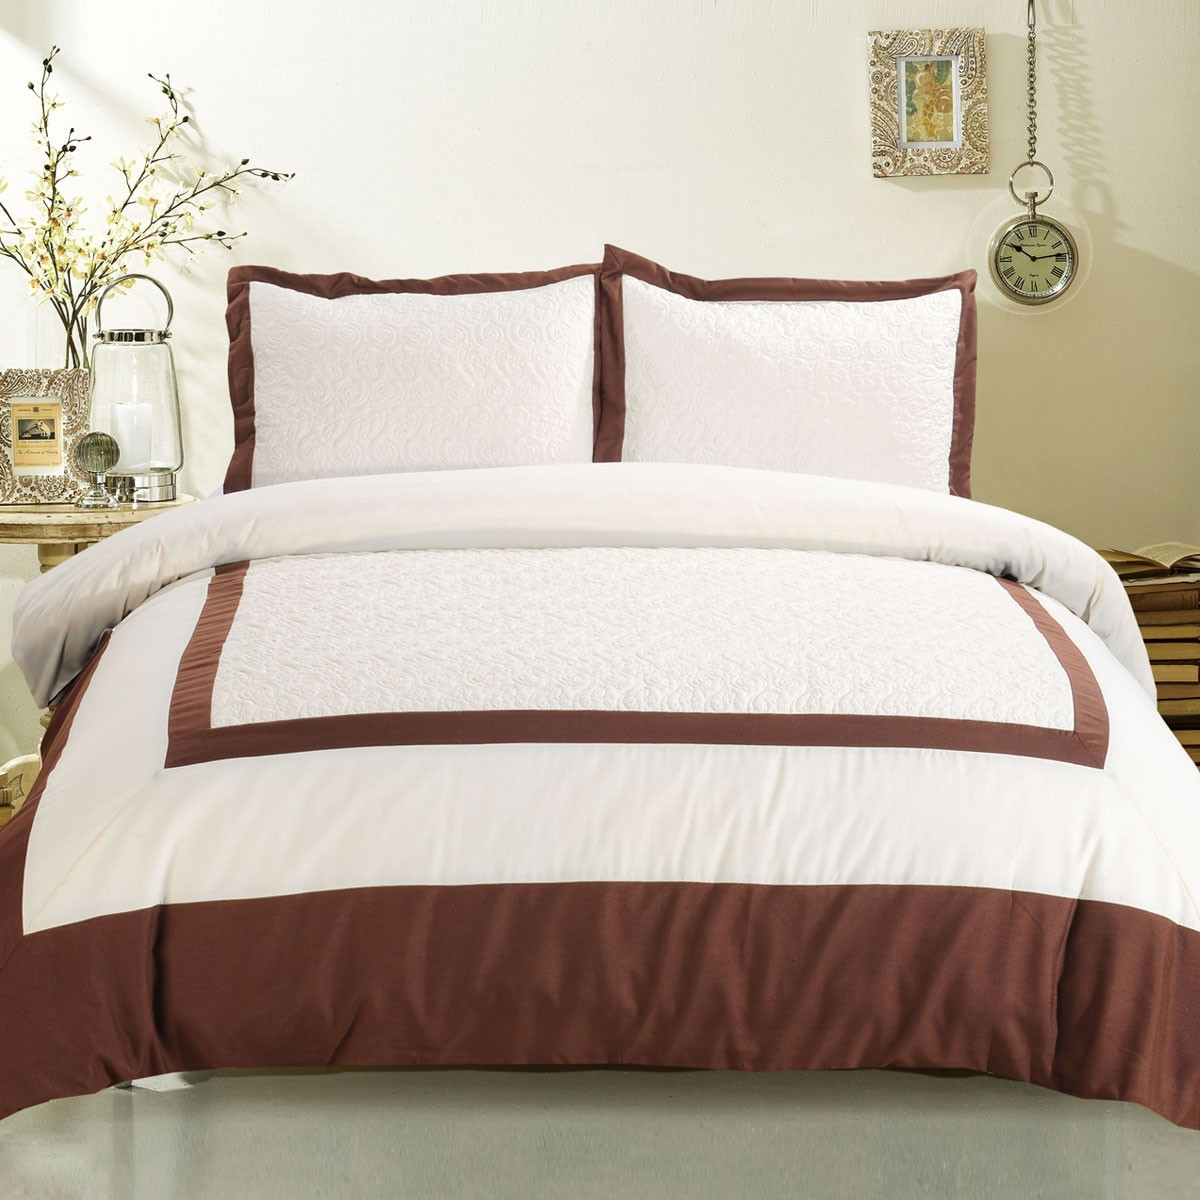 3-Piece Brown Duvet Cover Set (DK-LJ012)